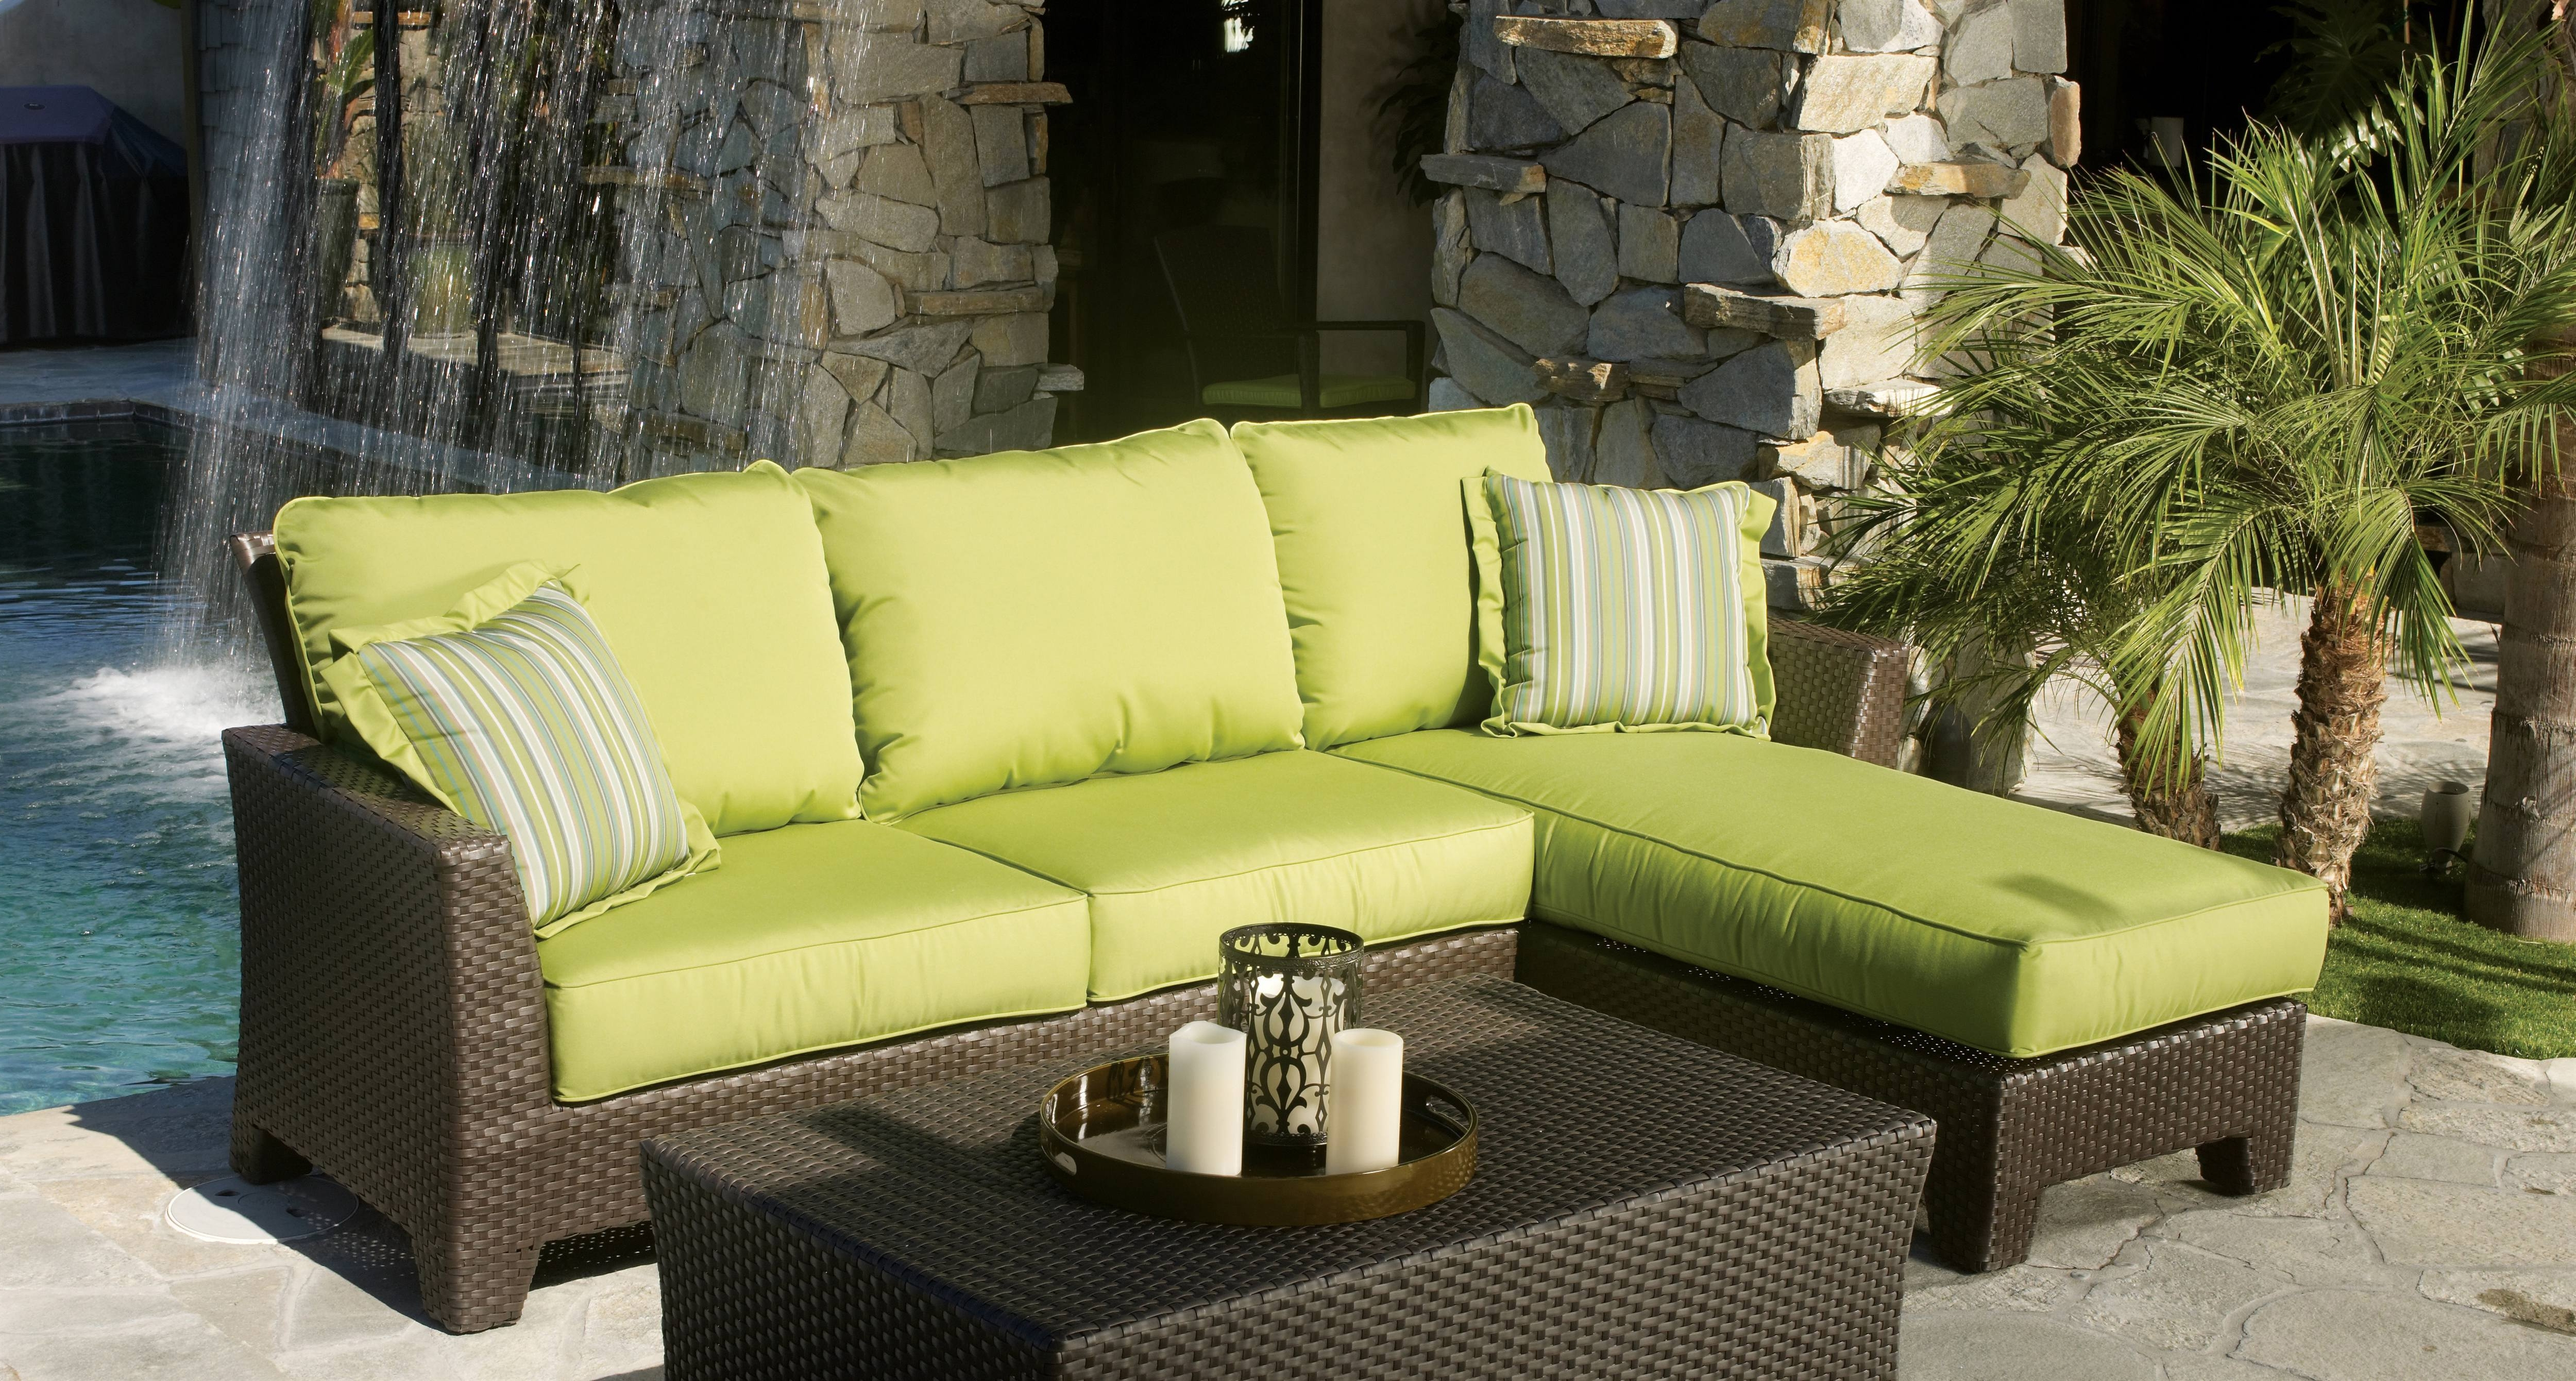 2017 Green Sectional Sofas With Chaise Inside Lime Green Sectional Sofa – Hotelsbacau (View 14 of 15)